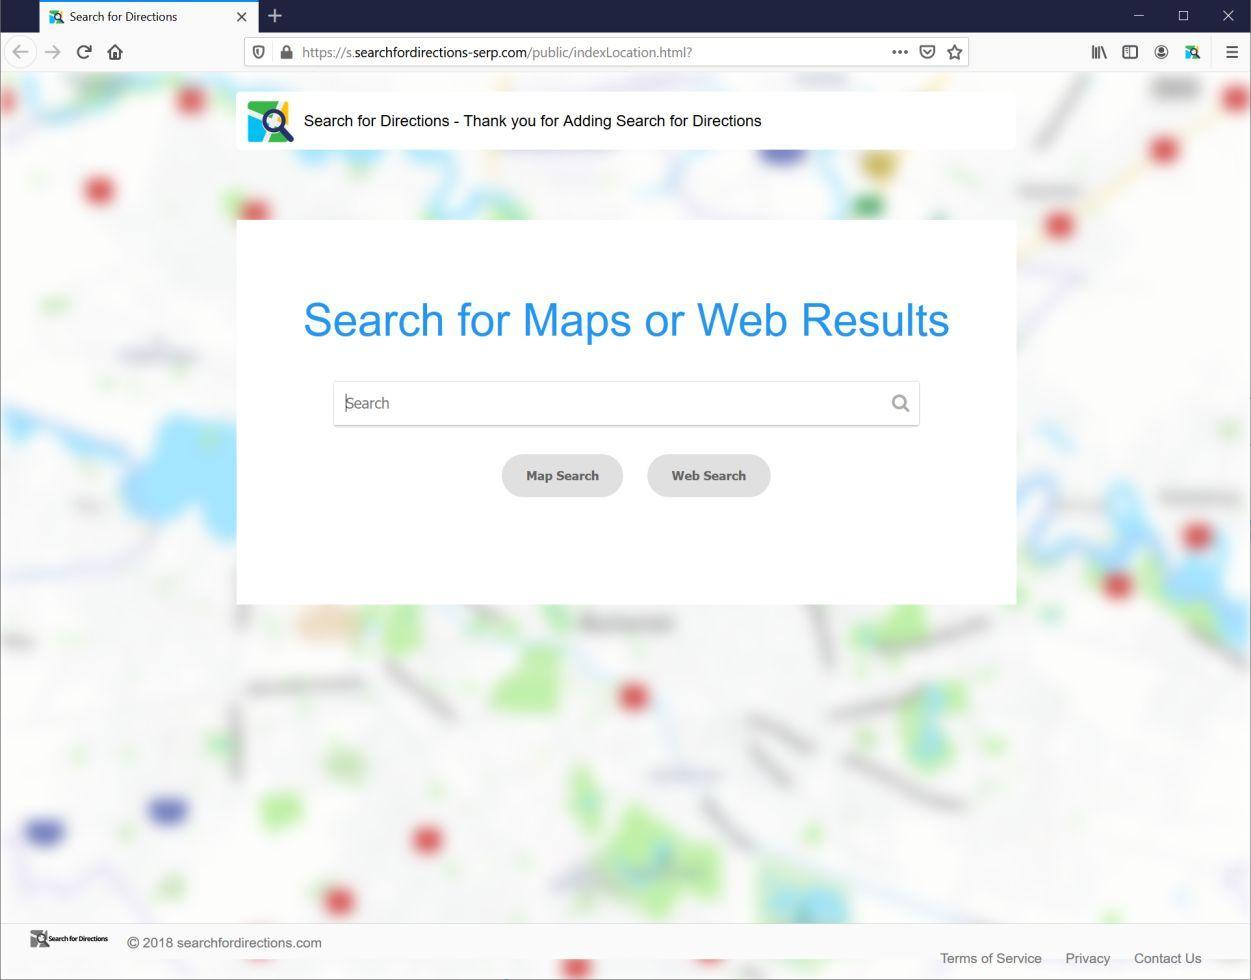 Image: Chrome browser is redirected to Search For Directions